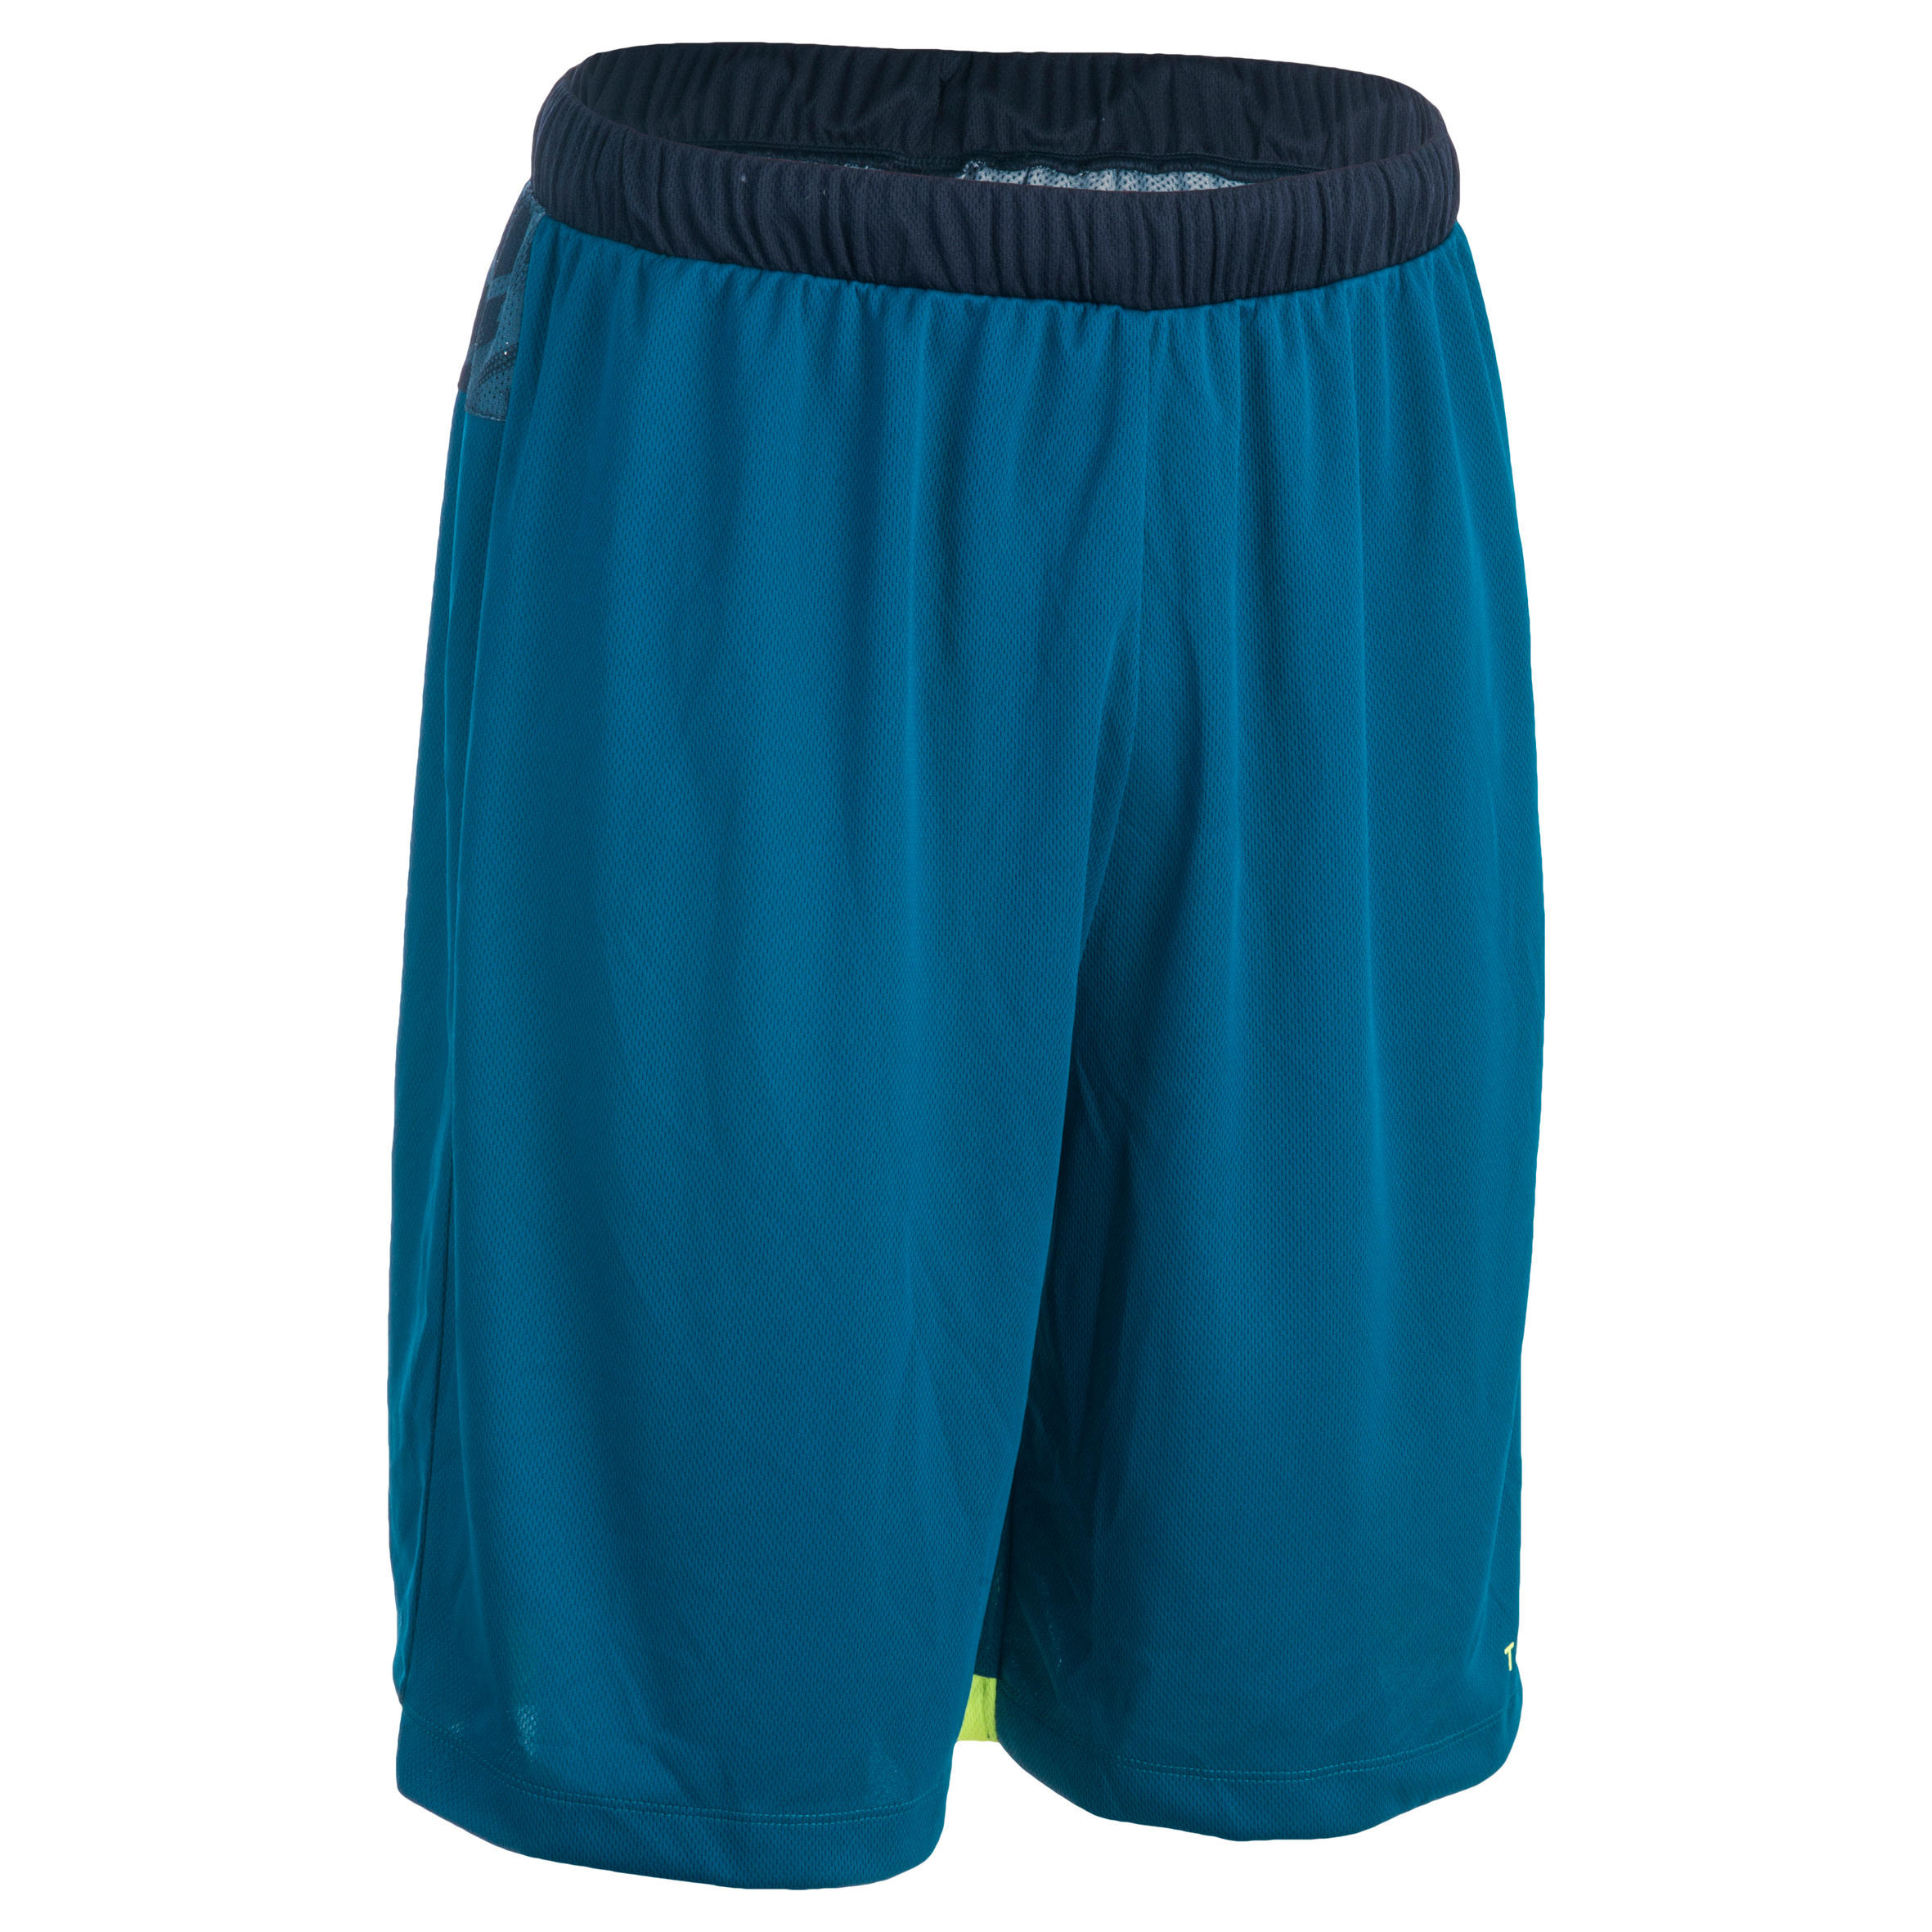 SH500 Intermediate Basketball Shorts - Blue/Digital Yellow